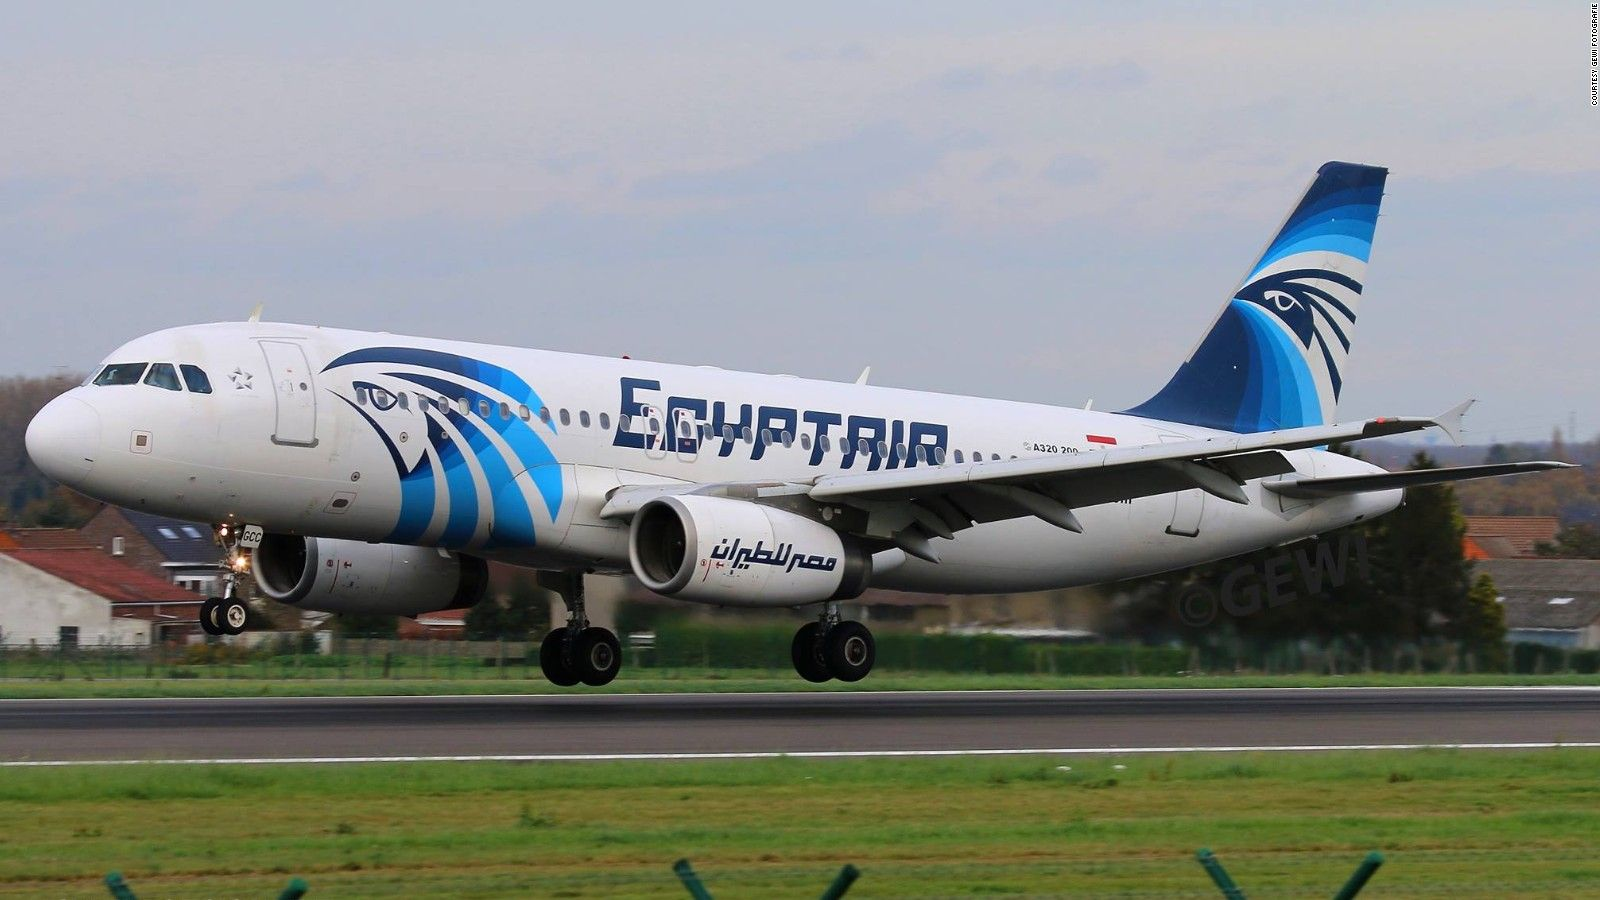 Egyptair Flights BookMySeat Cheap flight tickets